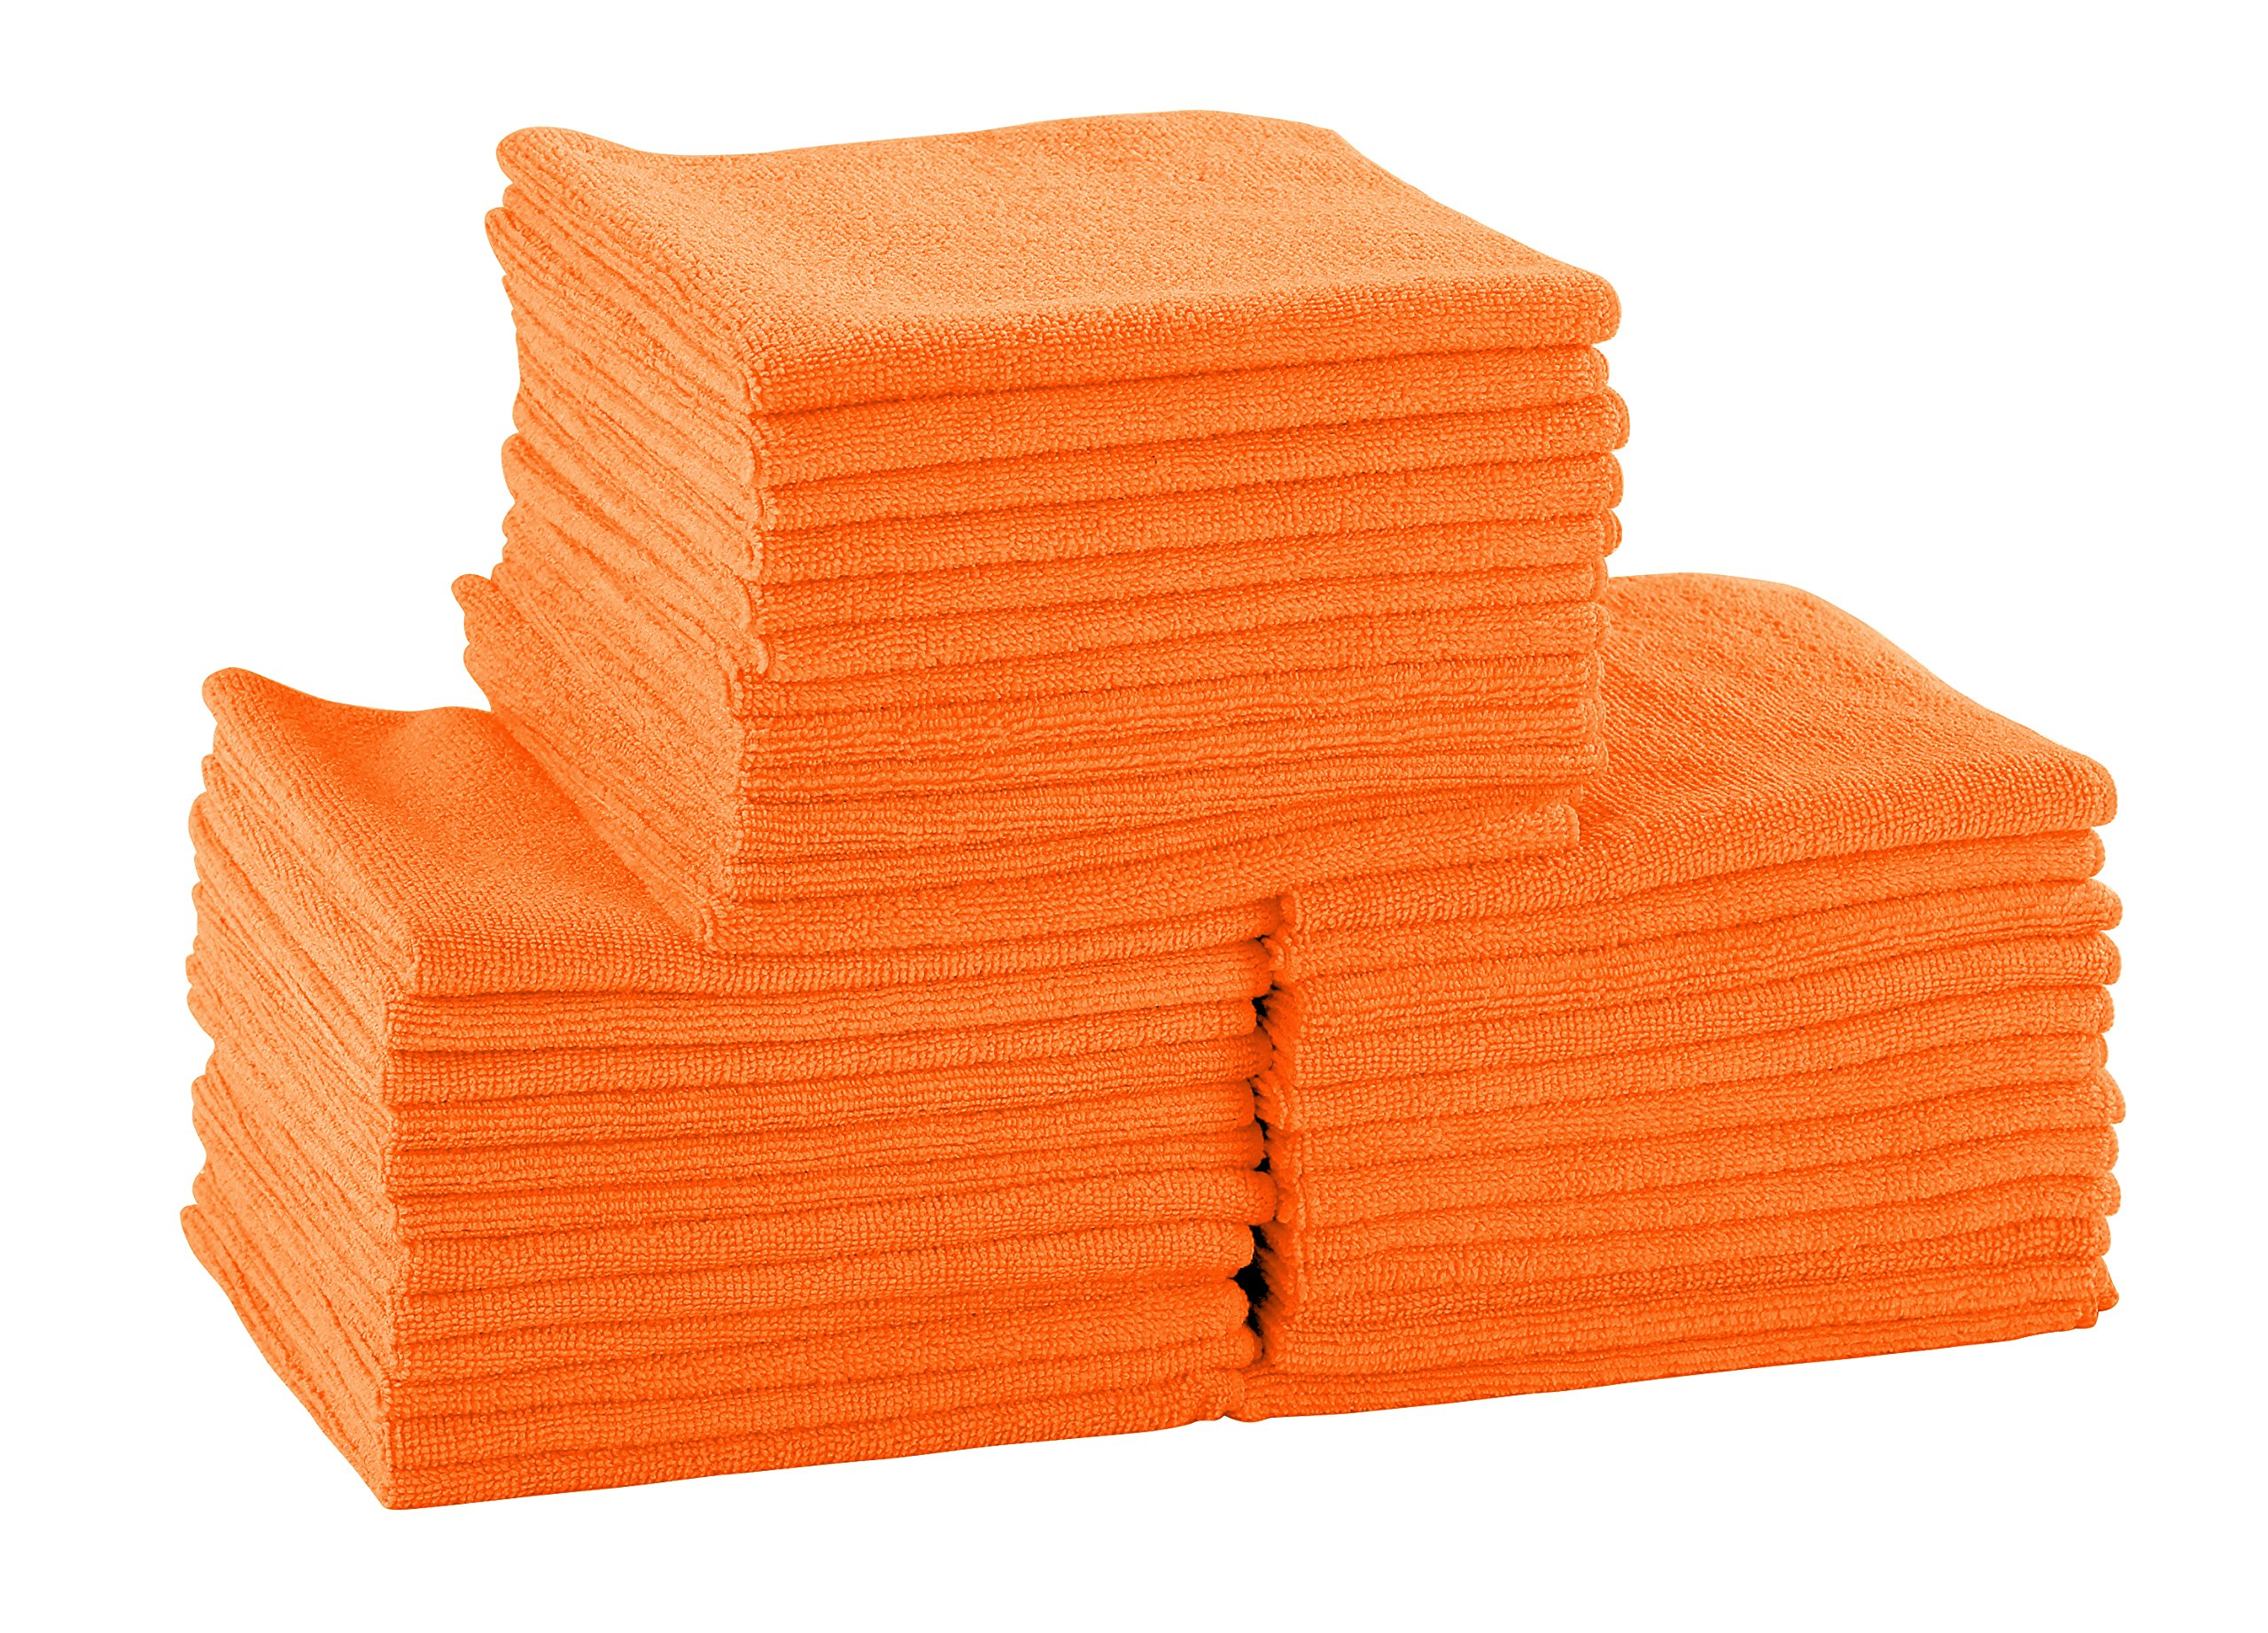 DRI Professional Extra-Thick Microfiber Cleaning Cloth - 16 in x 16 in - 72 Pack (Orange) - Ultra-Absorbent, Quick Drying, Chemical-Free Cleaning